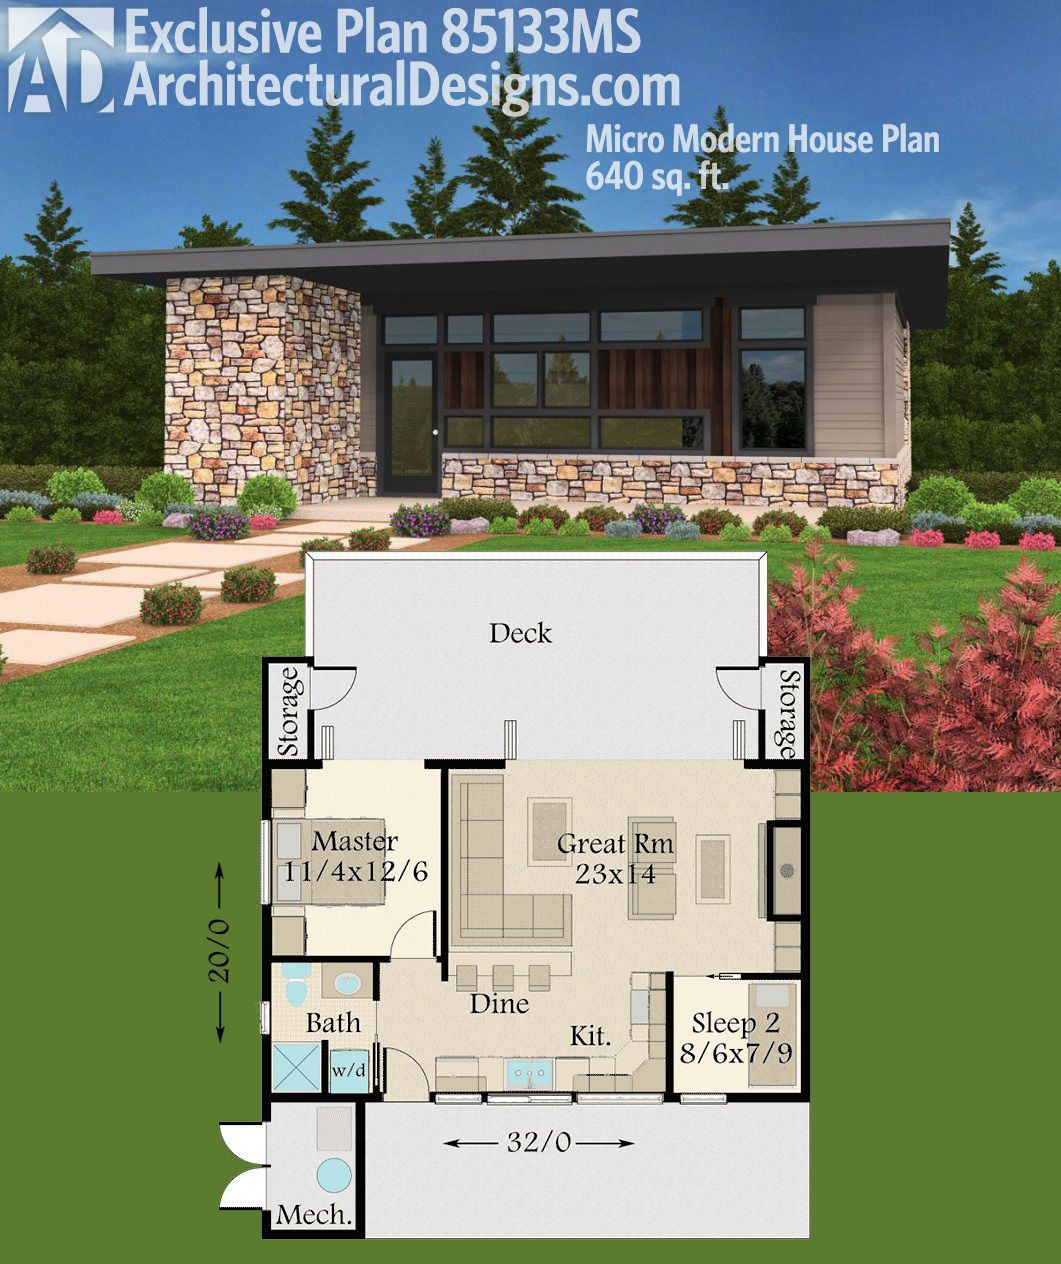 New Simple Home Designs House Design Games New House: Plan 85133MS: Exclusive Tiny Modern House Plan With